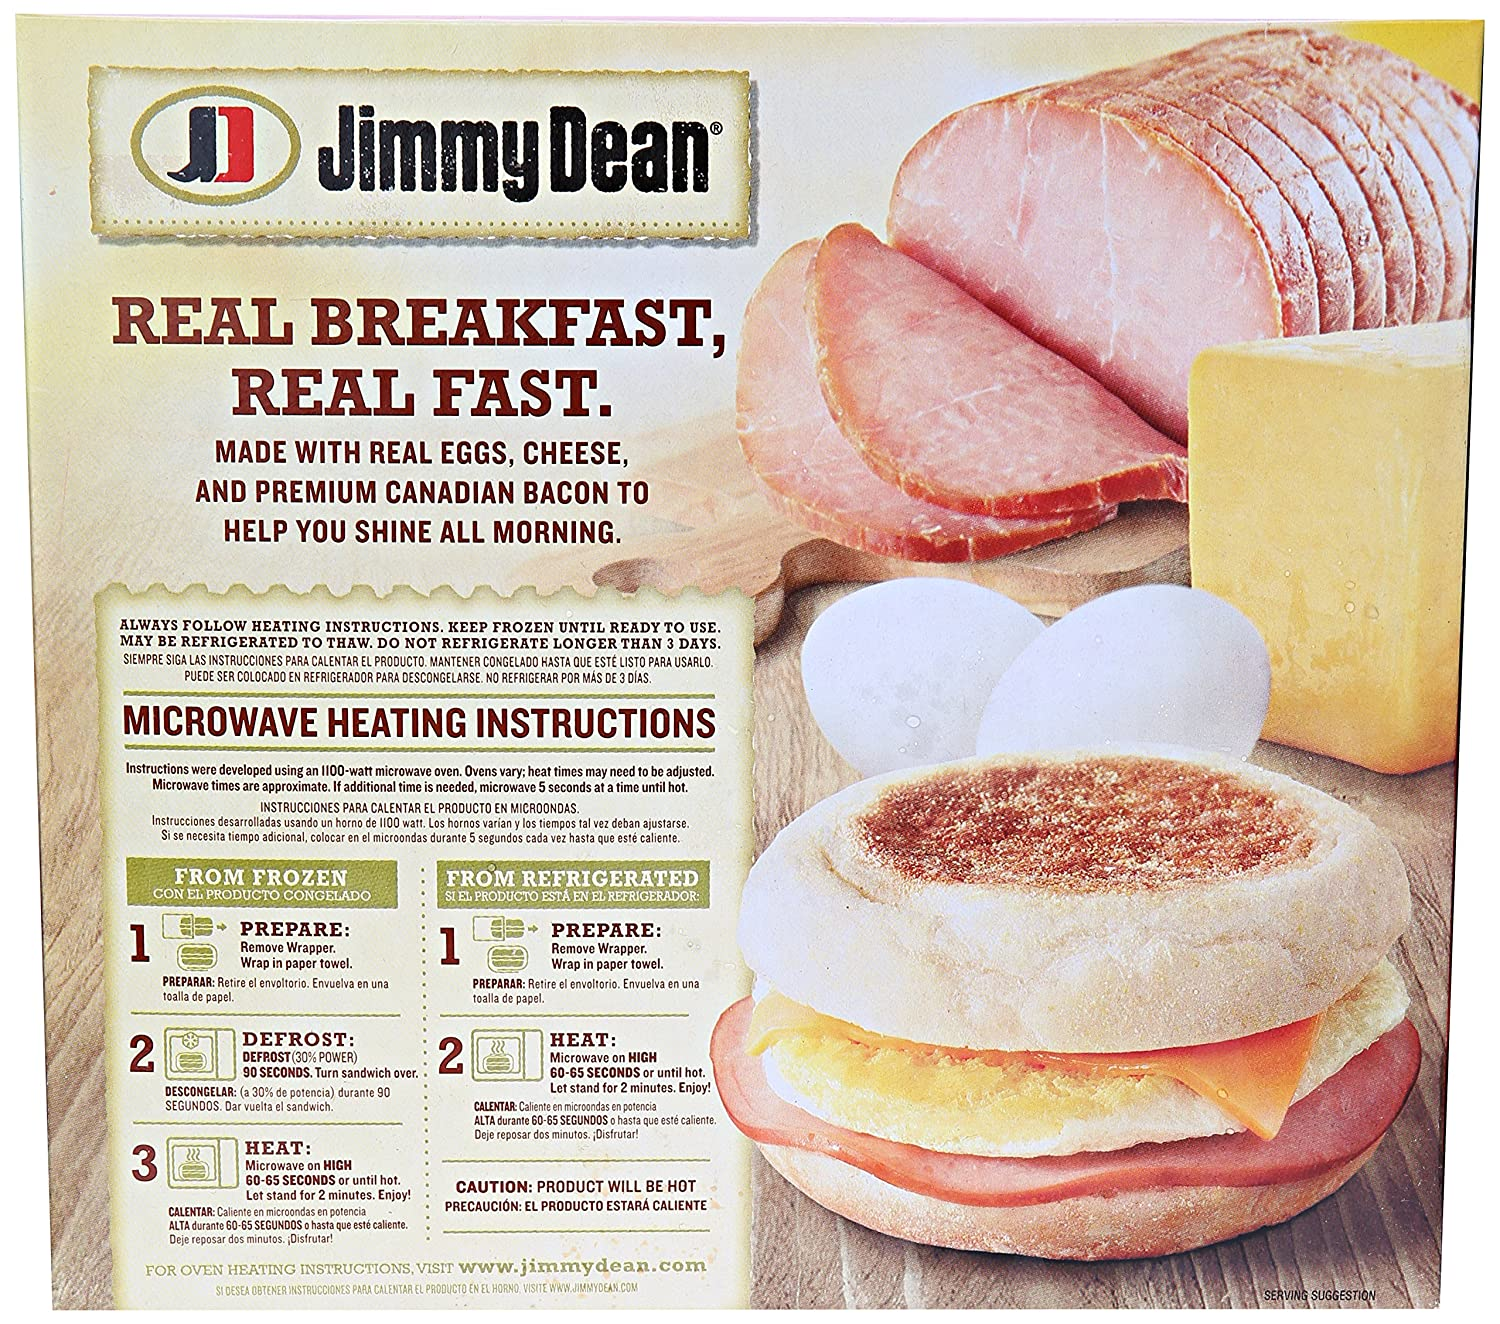 Jimmy Dean, Canadian Bacon, Whole Cracked Egg & Cheese English Muffin Sandwiches, 4 Count (Frozen): Amazon.com: Grocery & Gourmet Food